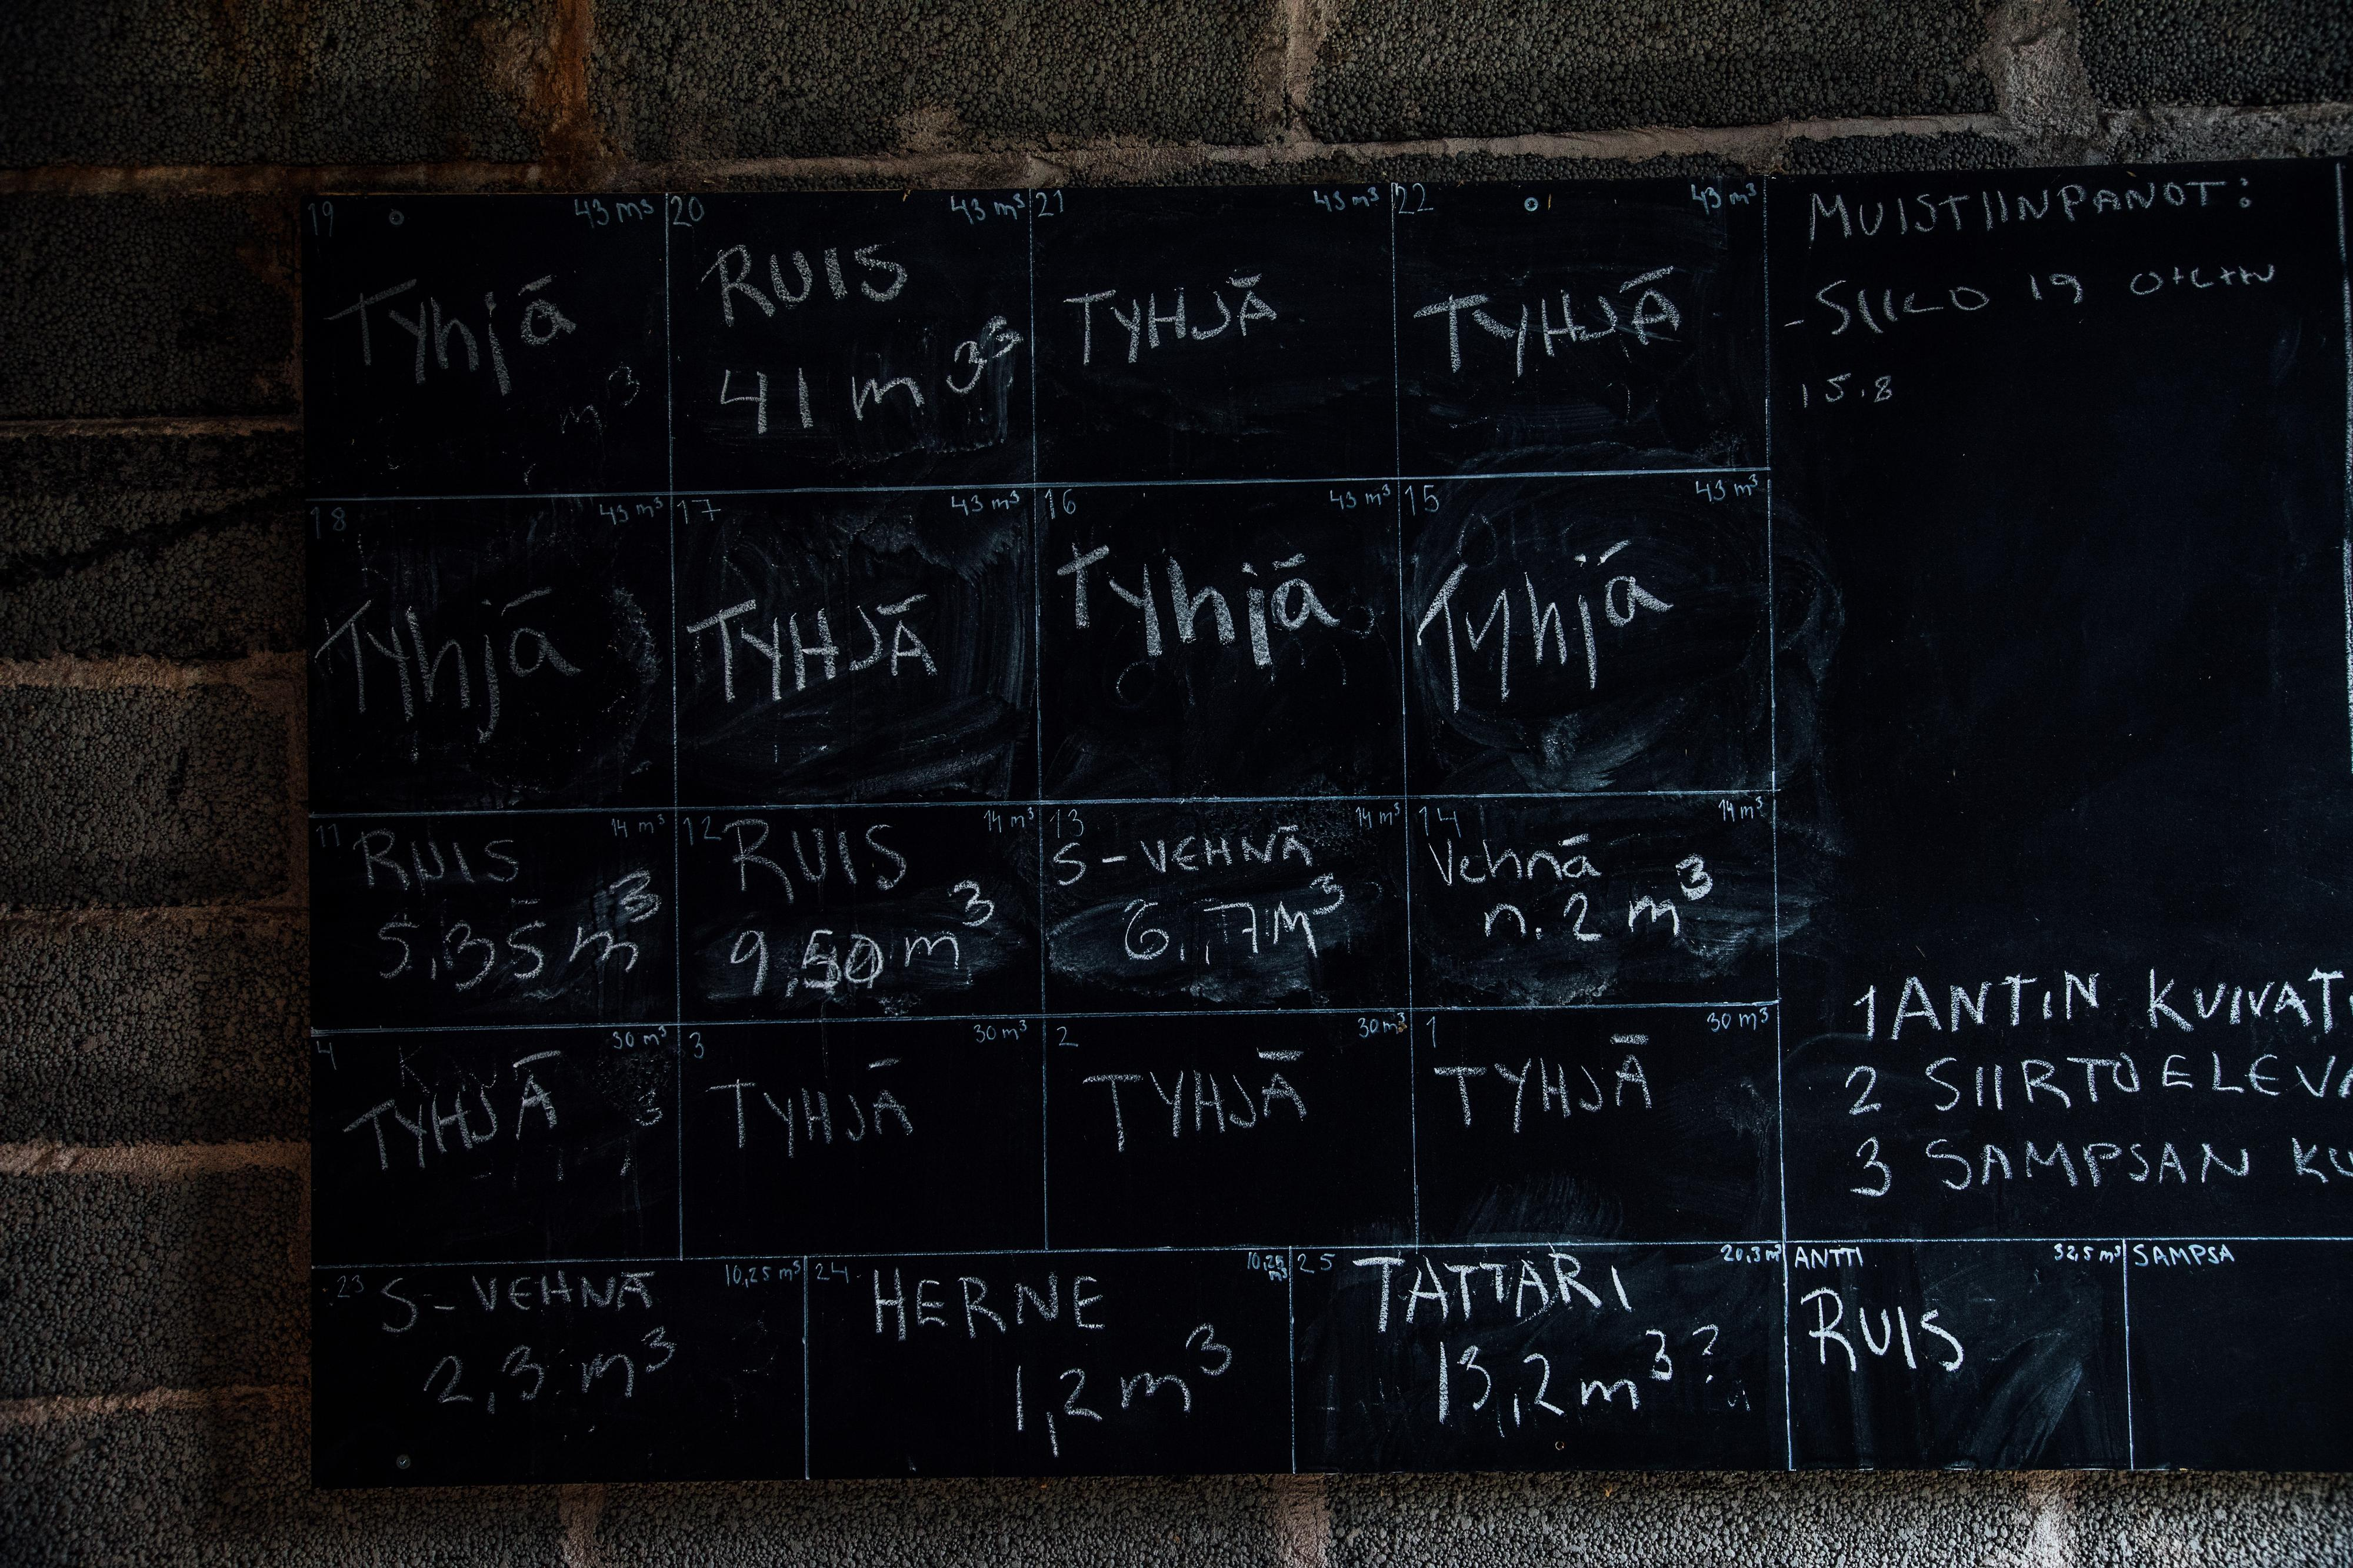 A chalkboard illustrates the state of different fields at the Knehtilä farm: right now half of them are empty. In organic farming fields are typically kept empty for periods of time so that the nutrients circulate better